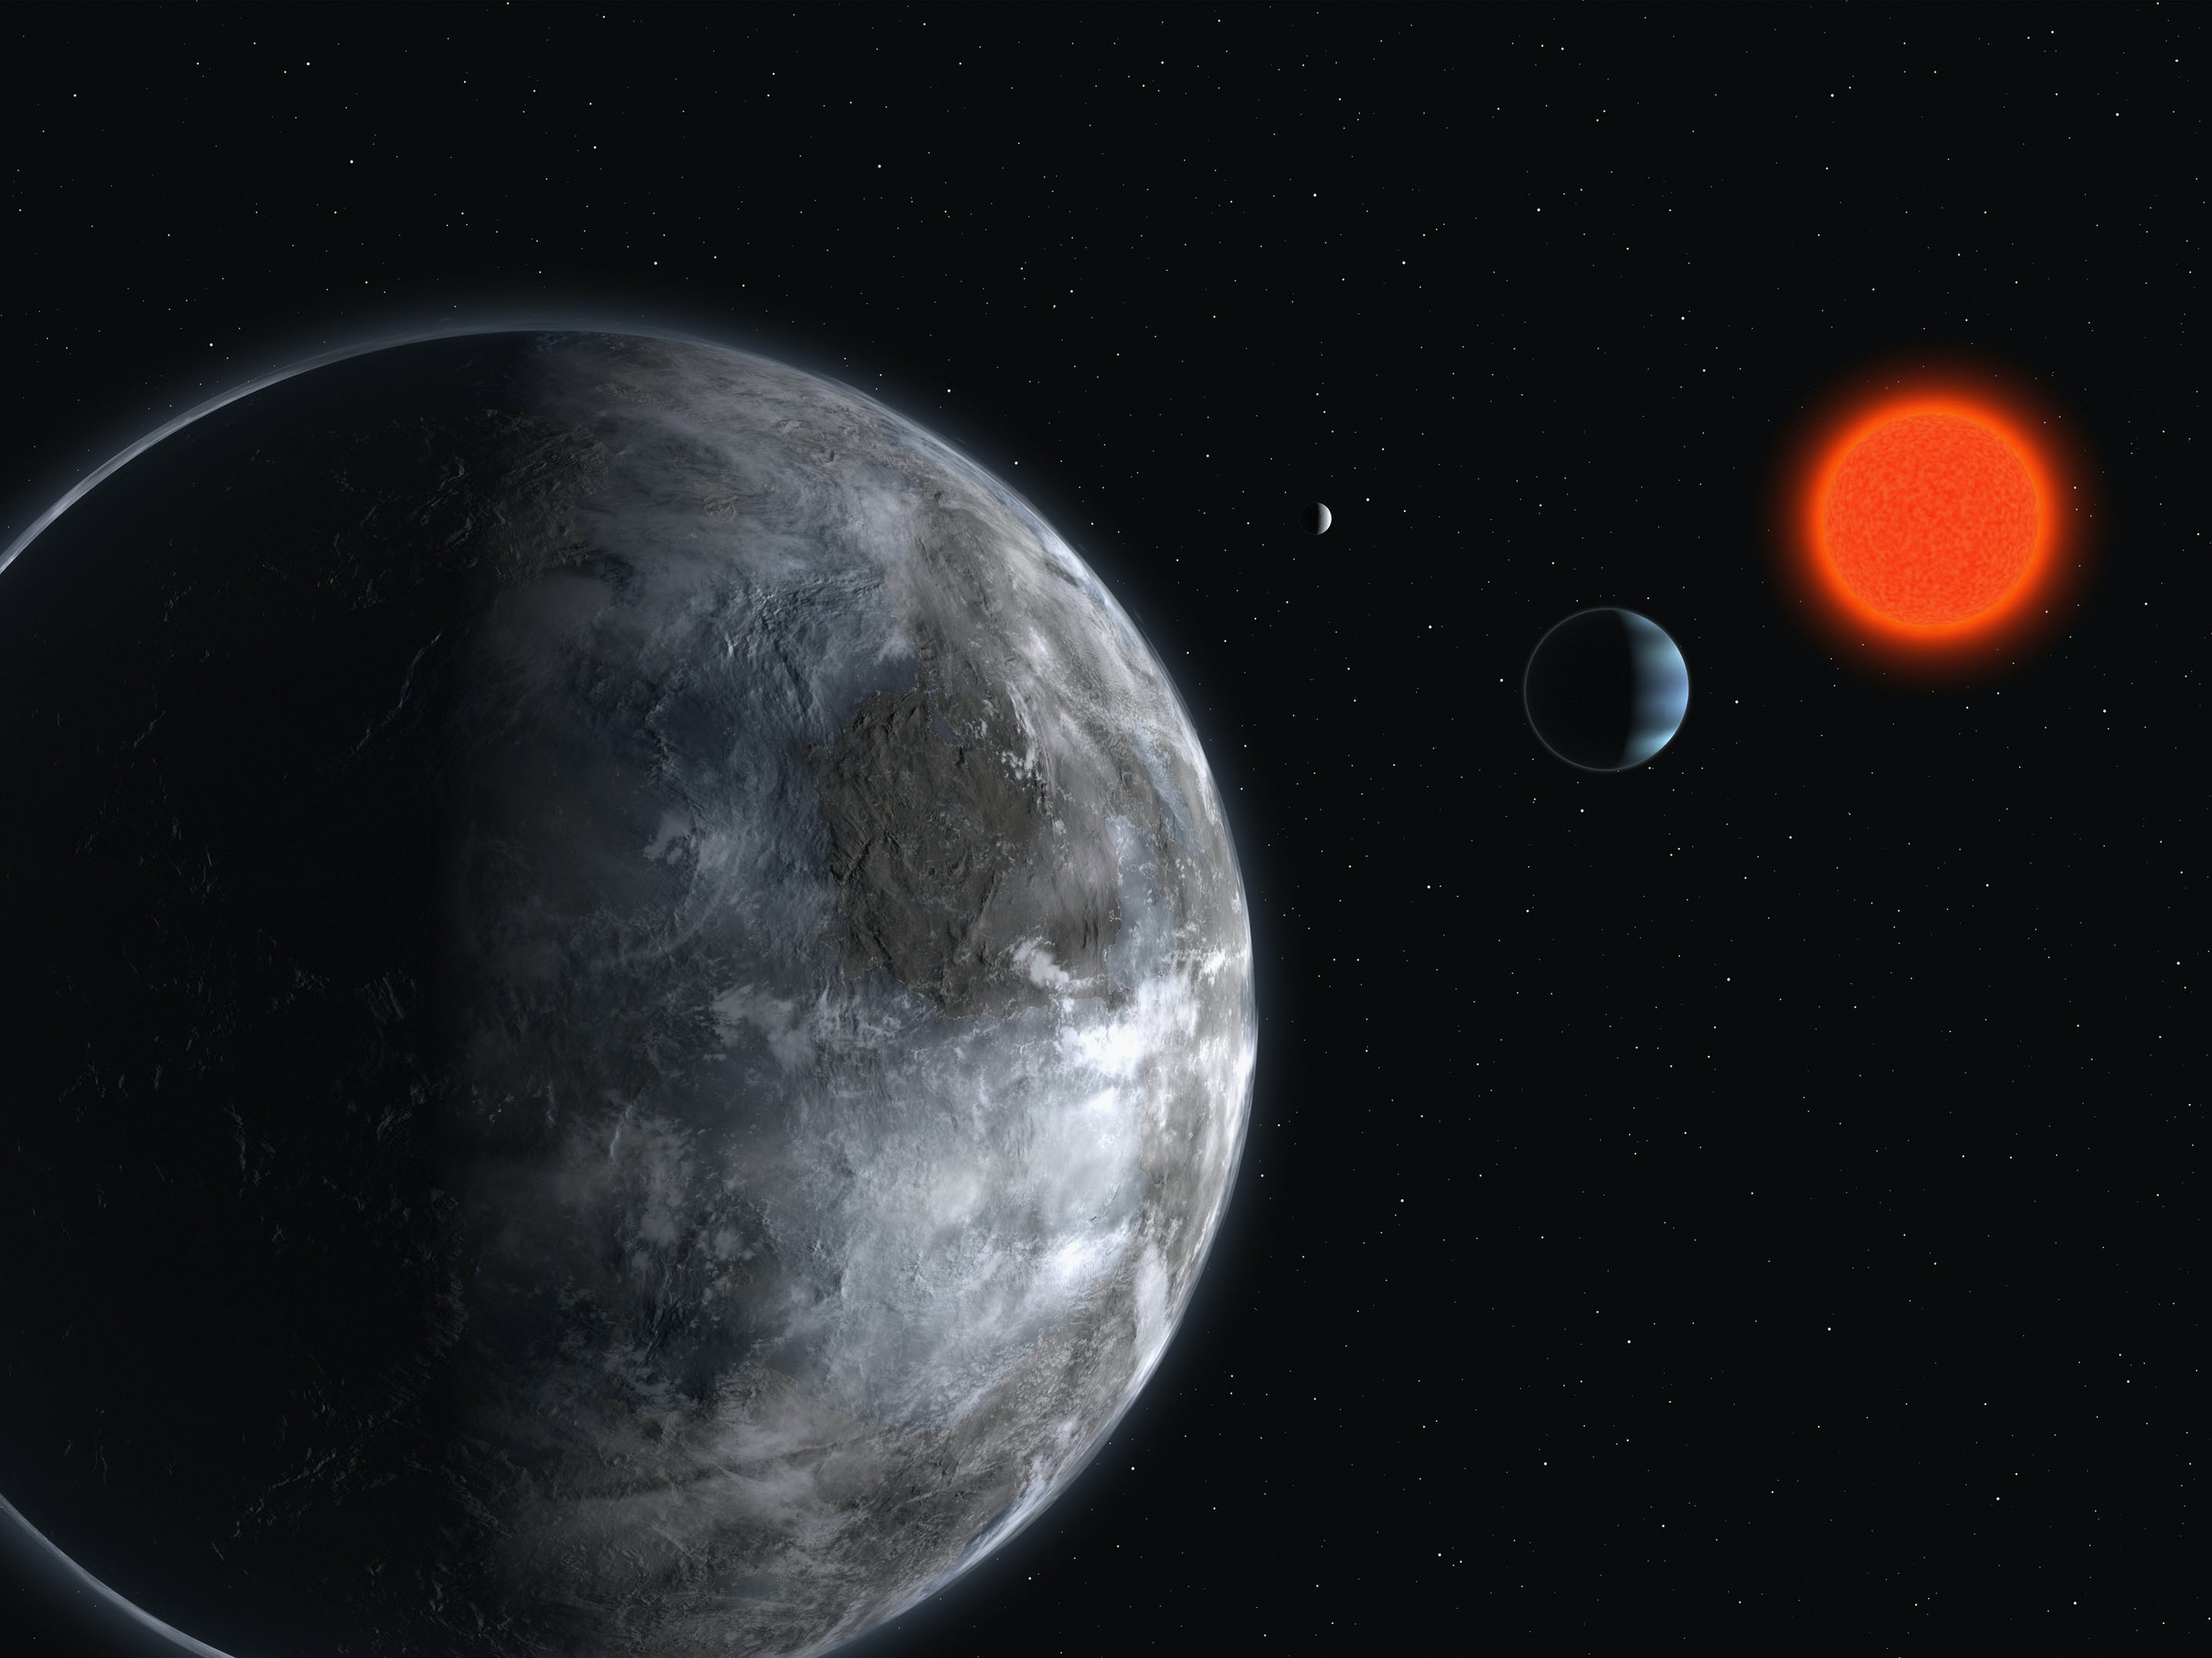 An artist's impression of the planetary system around the red dwarf, Gliese 581, showing what astronomers believe is one of the most earth like planets found outside our solar system.  The planet may have water running on it's surface, and is 20.5 light-years away in the constellation Libra. (Photo by ESO via Getty Images)